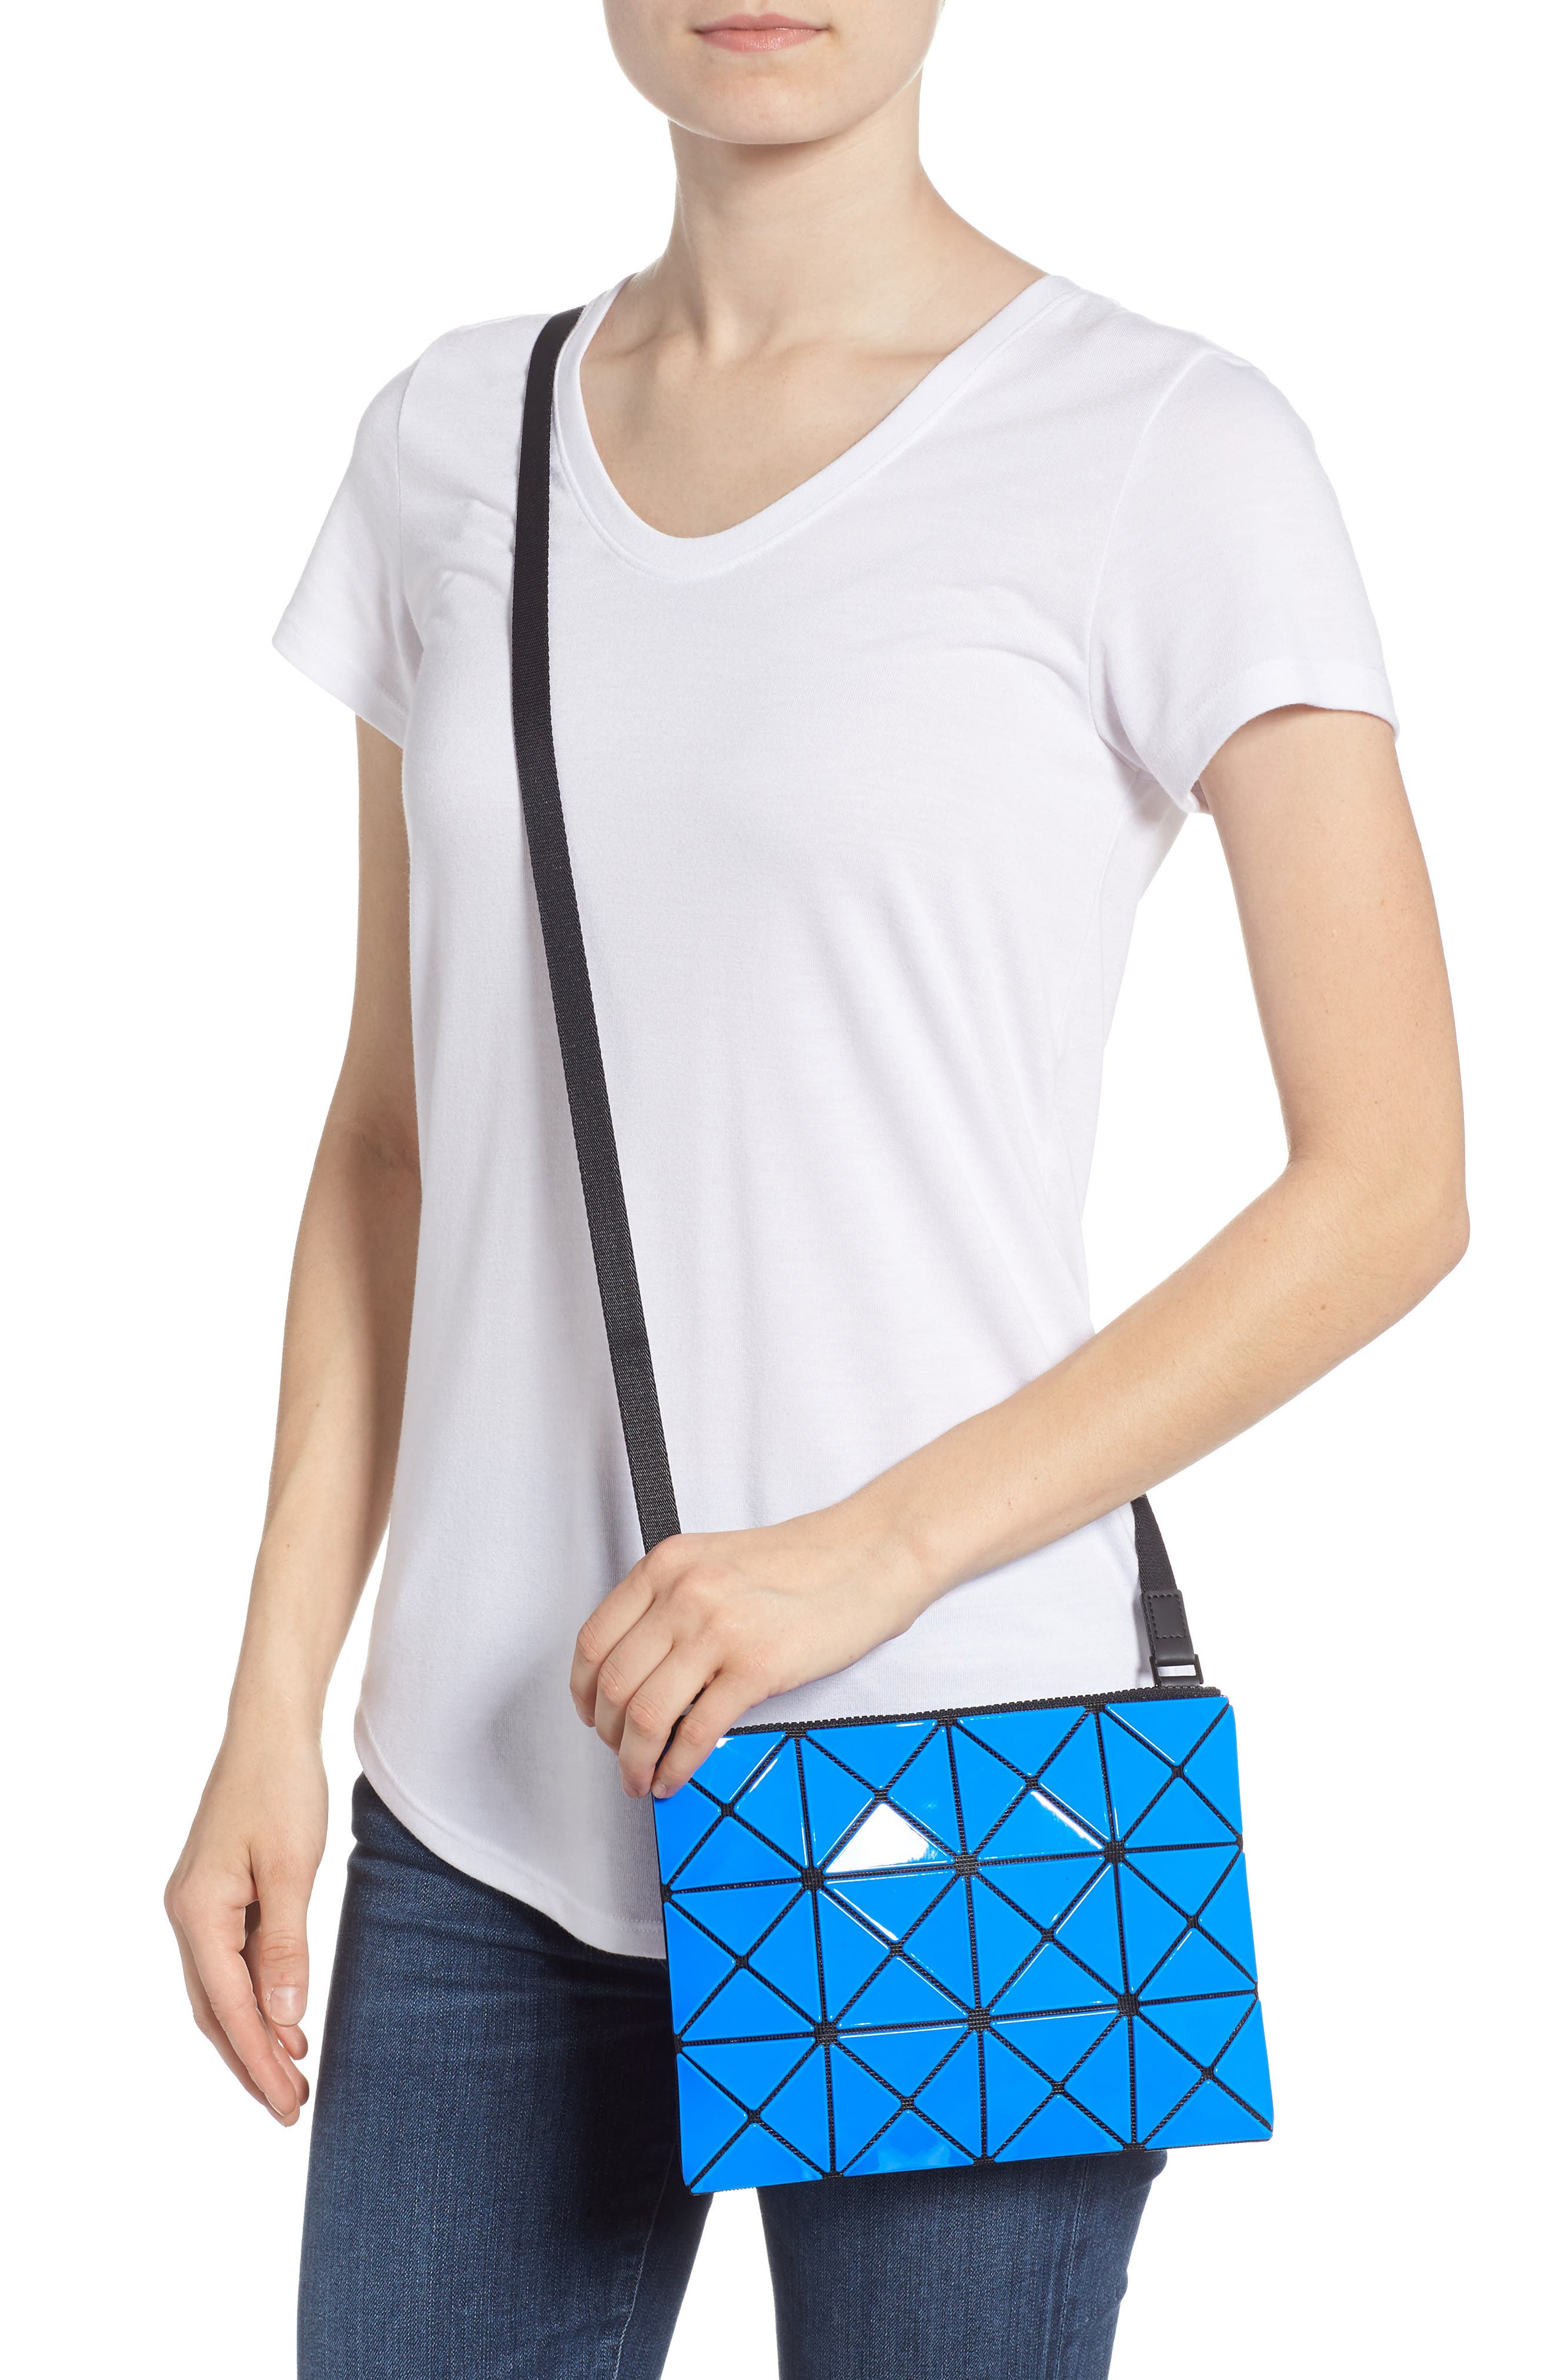 Lucent Two-Tone Crossbody Bag,                             Alternate thumbnail 2, color,                             400